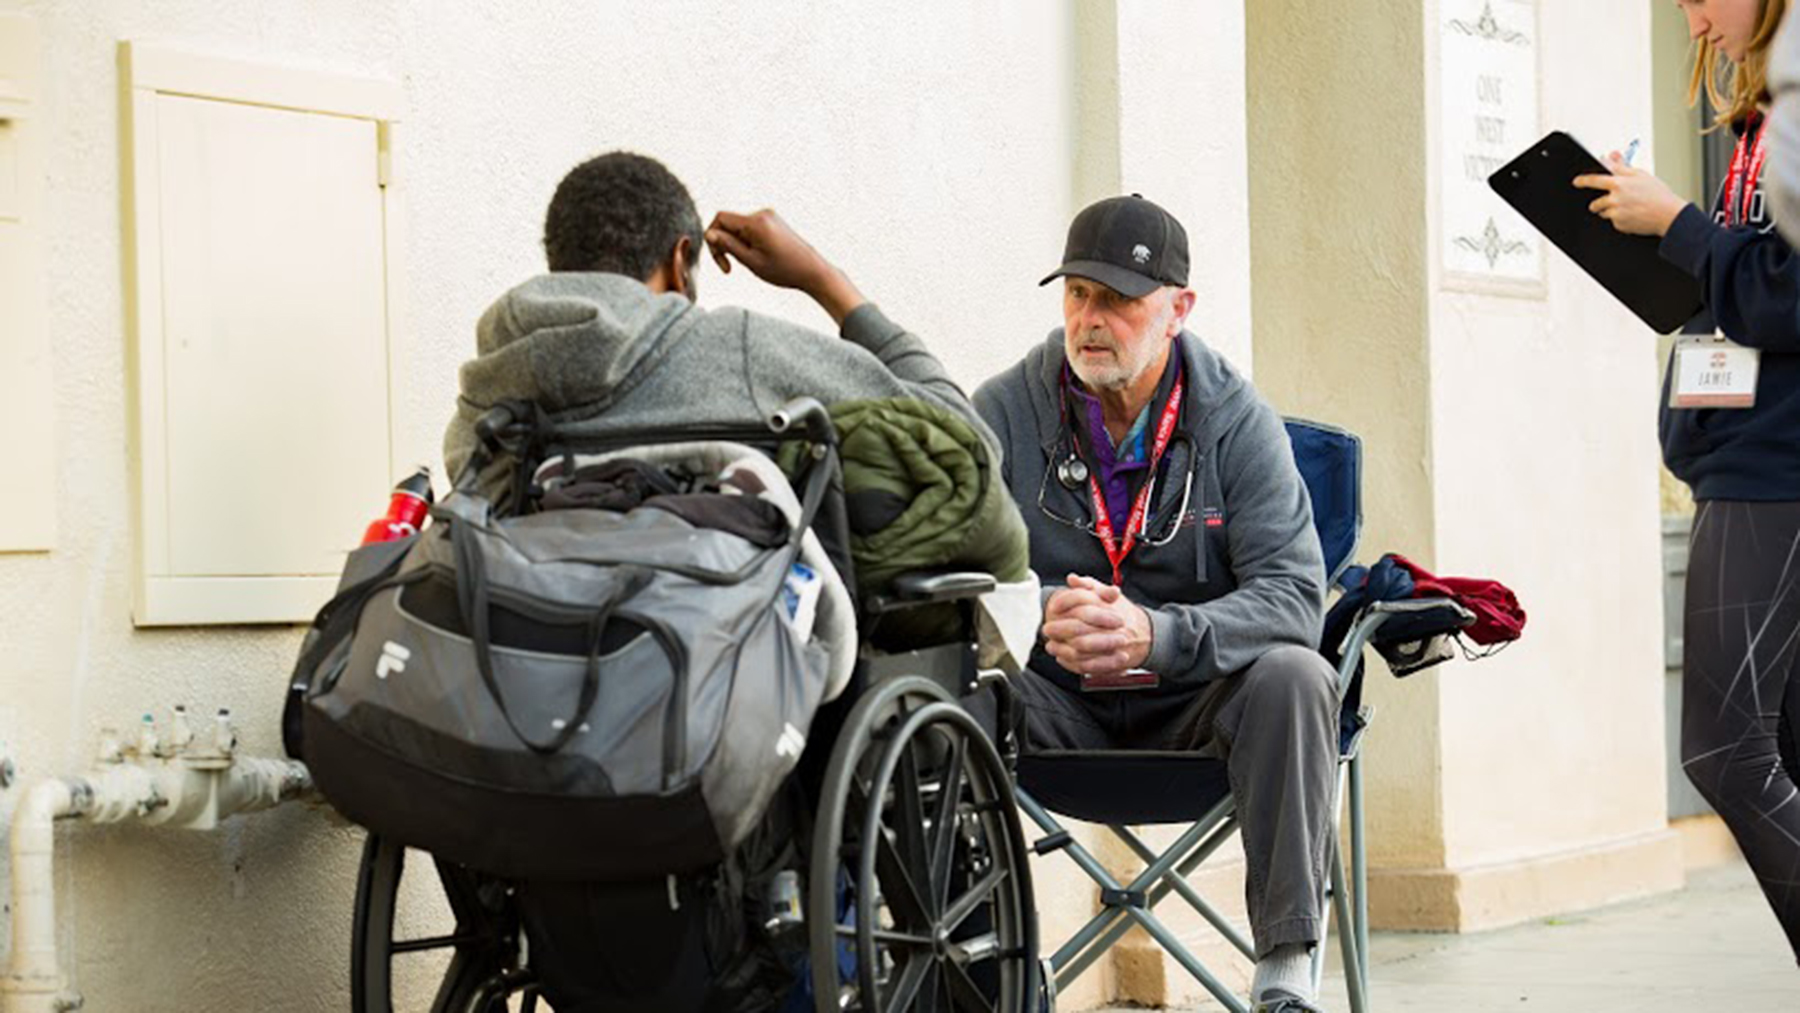 Dr. John Vallee, a volunteer with Doctors Without Walls, in consultation with a homeless patient in 2019. People without permanent housing may be particularly vulnerable to Cobid-19, and health providers are working to protect the population as much as they can. (Photo by Mark Semegen for Direct Relief)